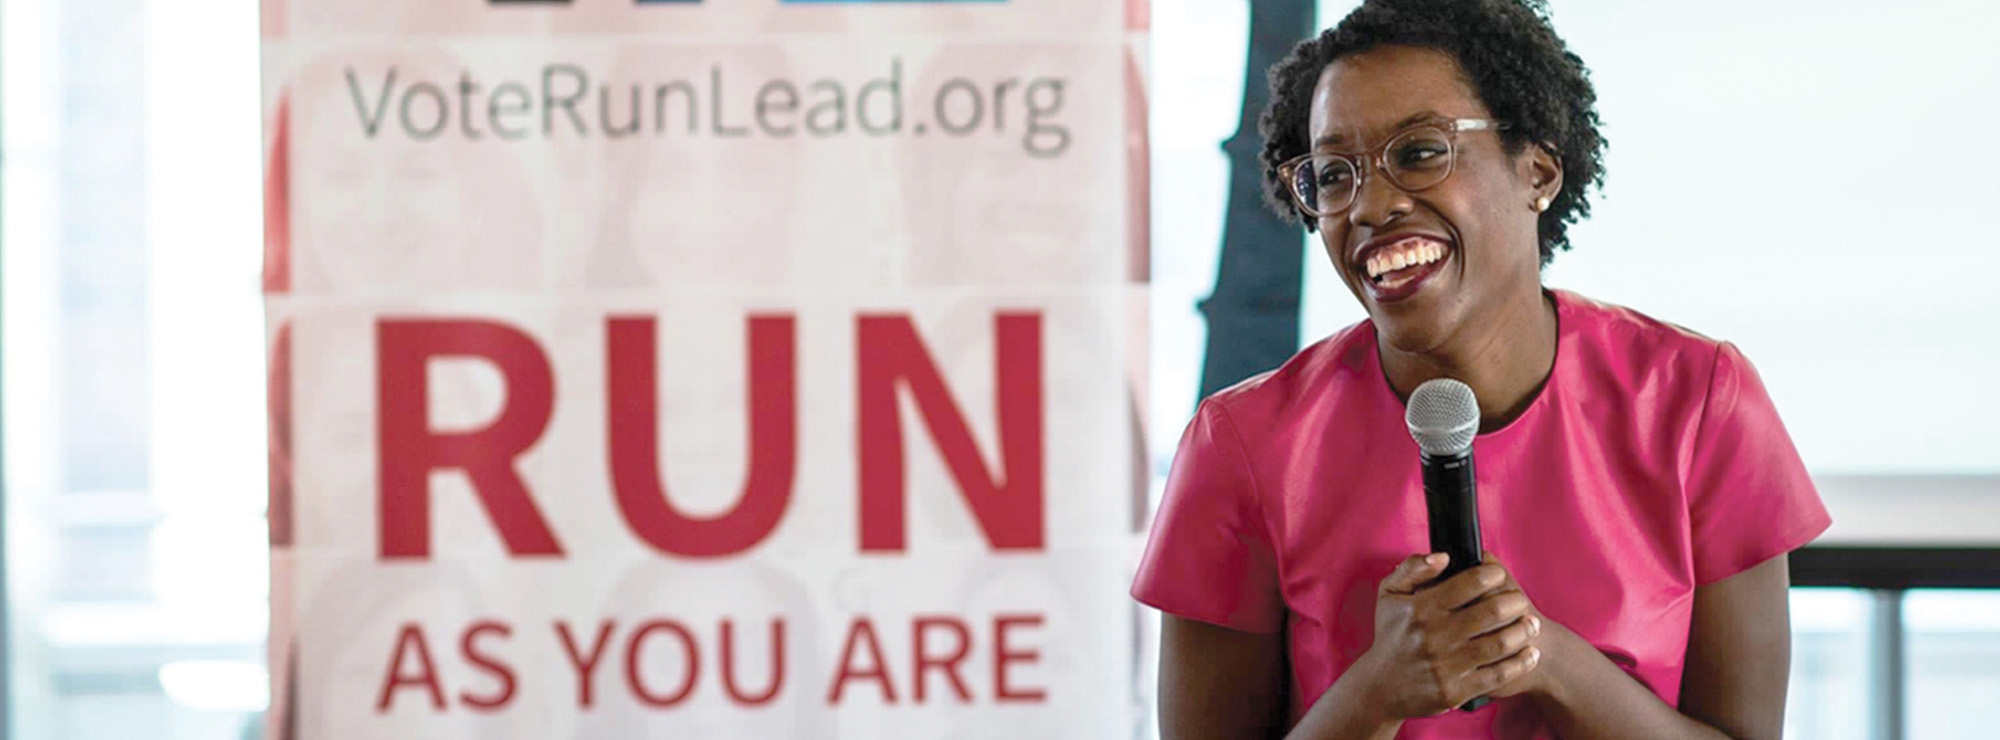 """Photo of a smiling woman holding a microphone and standing in front of a """"Run as you are"""" poster."""